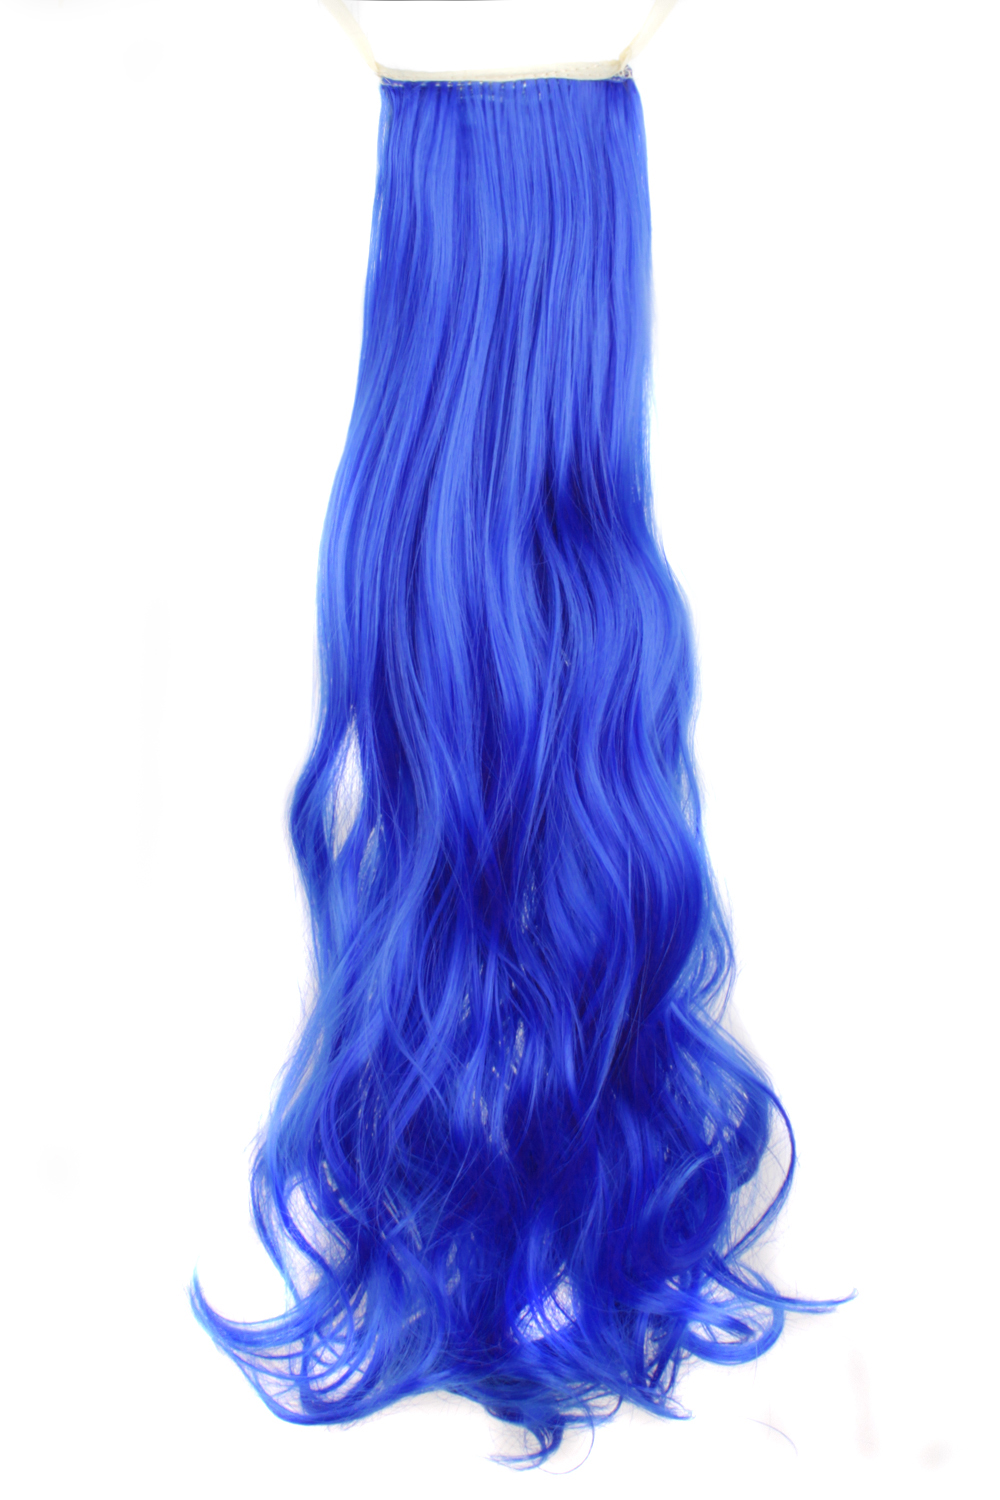 Synthetic Female Dark Blue Curly Ponytail Hair Extensions In